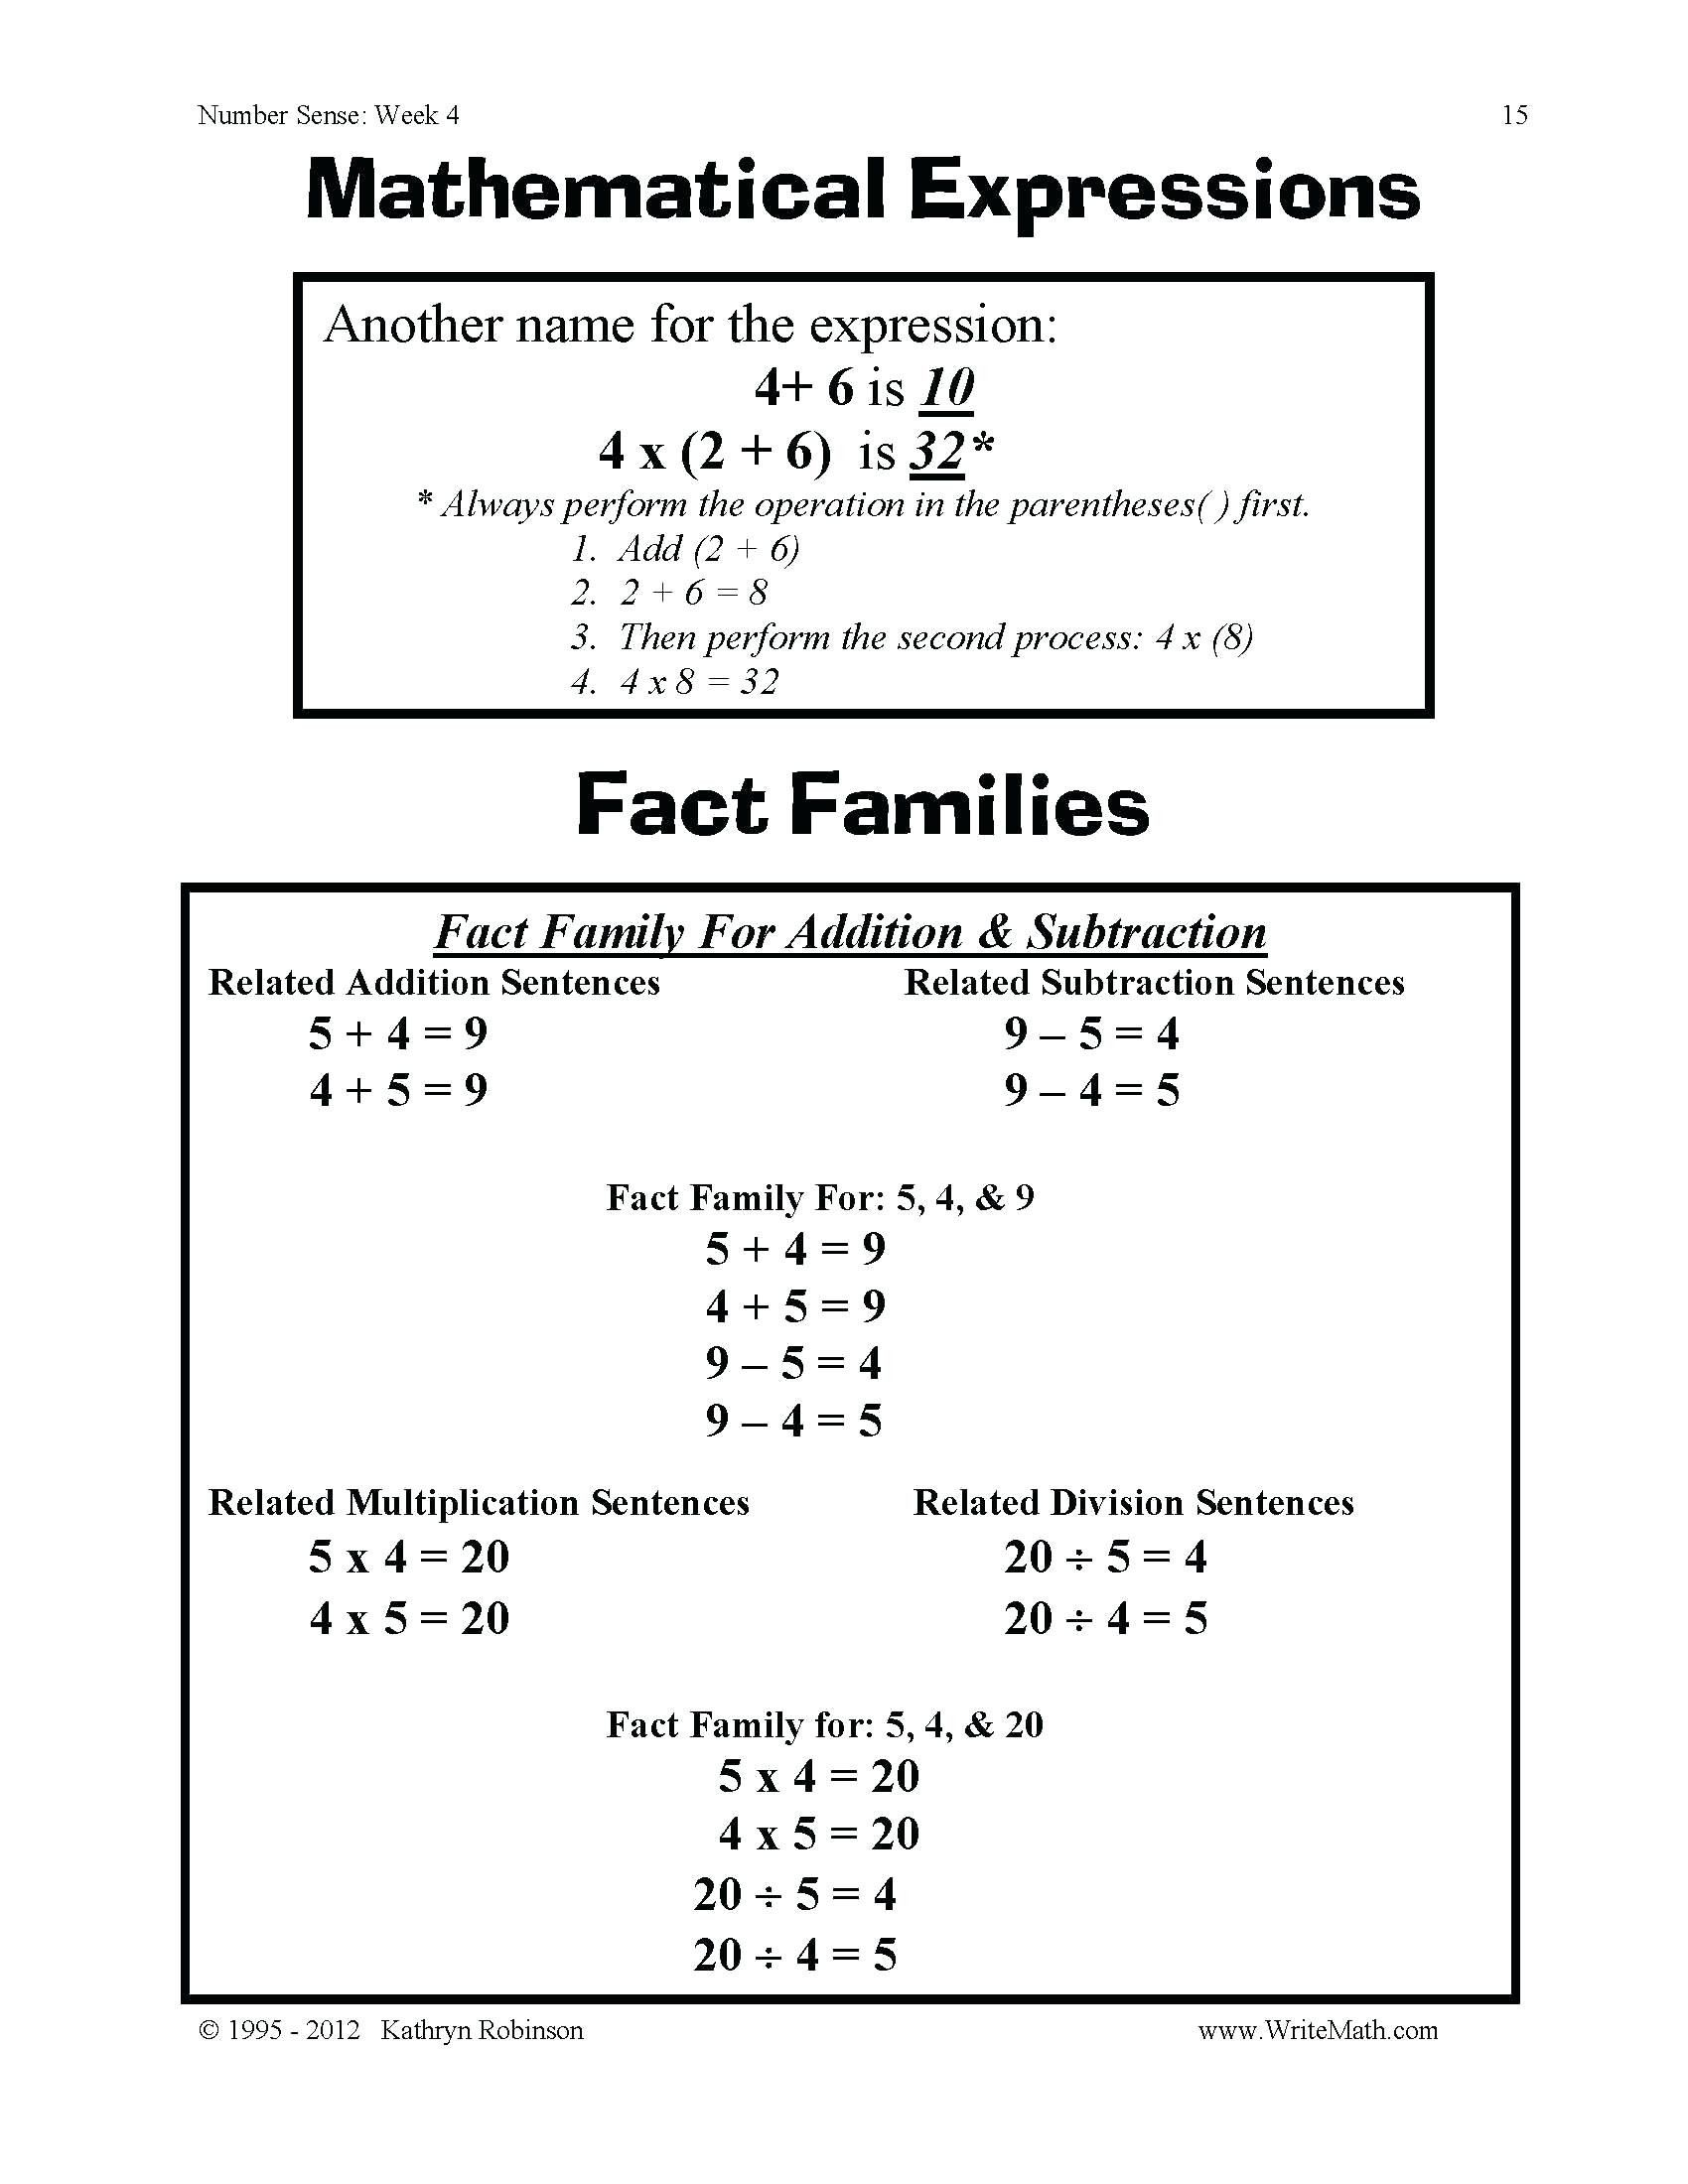 Multiplication Properties Worksheets 5th Grade Division Worksheets 5th Grade  Inspirational …   Math division worksheets [ 2200 x 1700 Pixel ]